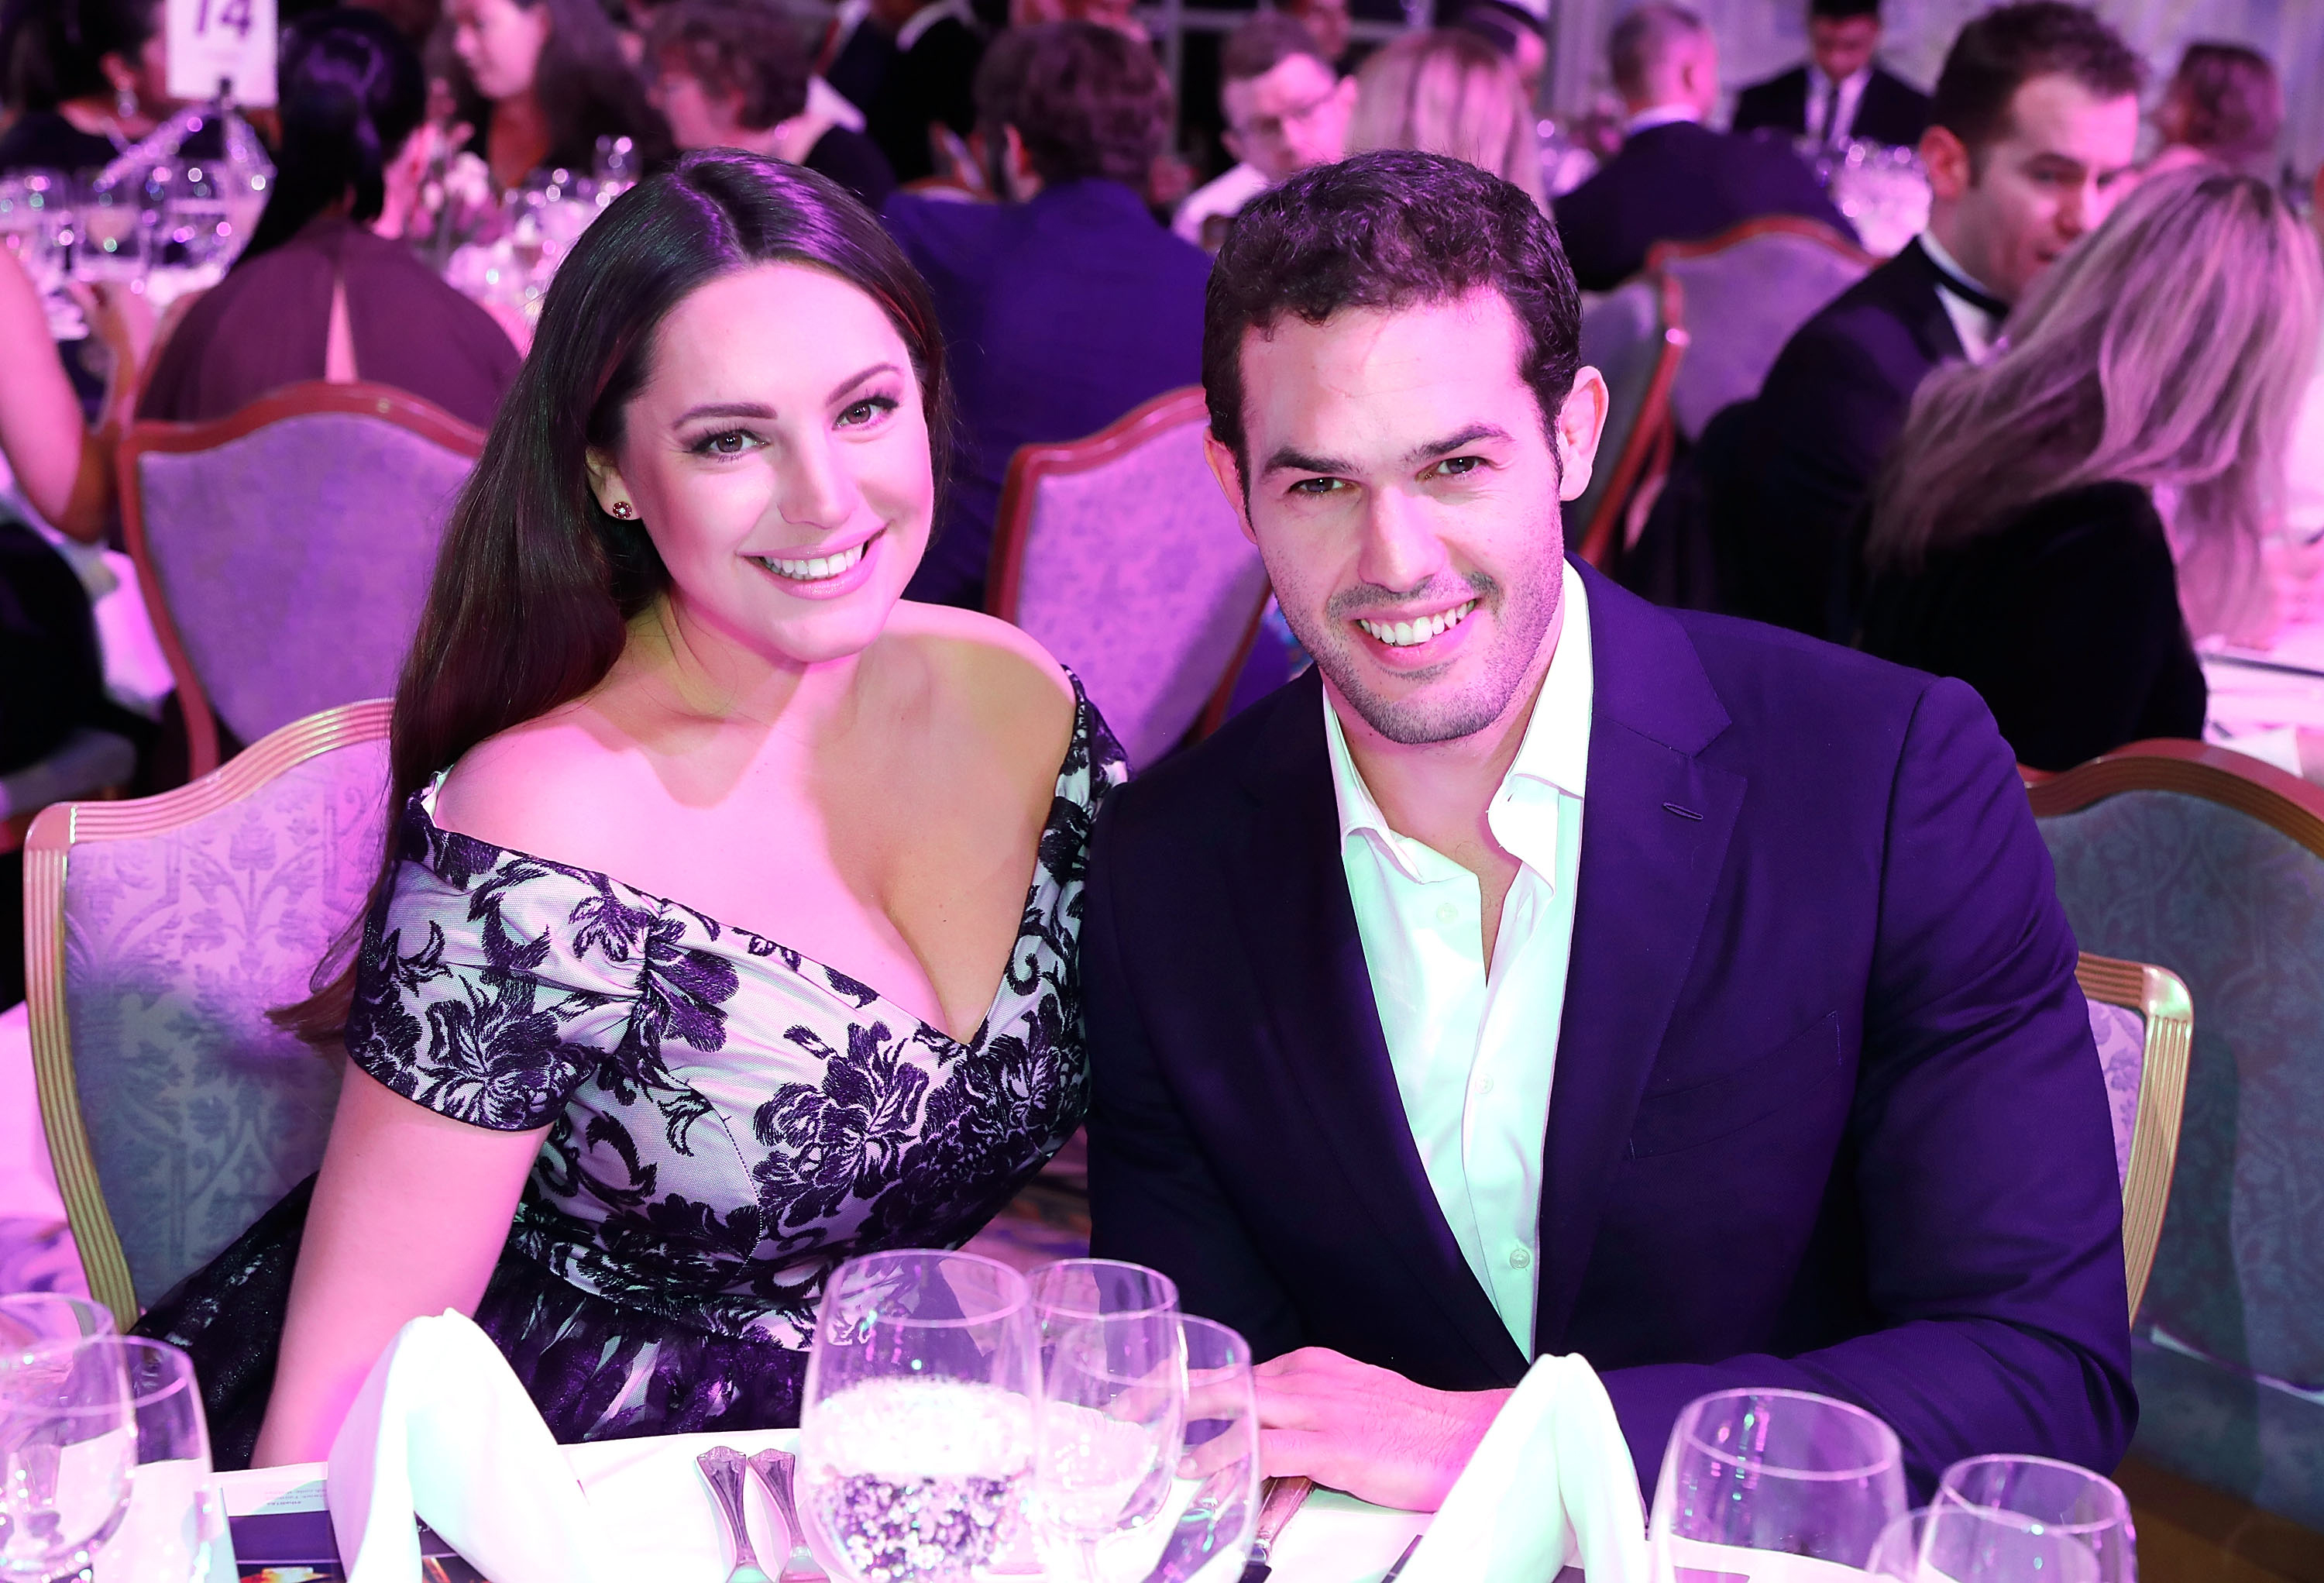 LONDON, ENGLAND - NOVEMBER 27:  Jeremy Parisi and Kelly Brook attend the British Takeaways Awards, in association with Just Eat at The Savoy Hotel on November 27, 2017 in London, England. The awards recognise the unsung heroes of the nation's favourite local takeaways and reward the amazing contribution takeaways, chefs and delivery drivers make to both their local communities and the British economy.  (Photo by David M. Benett/Dave Benett/Getty Images for Just Eat) *** Local Caption *** Kelly Brook; Jeremy Parisi